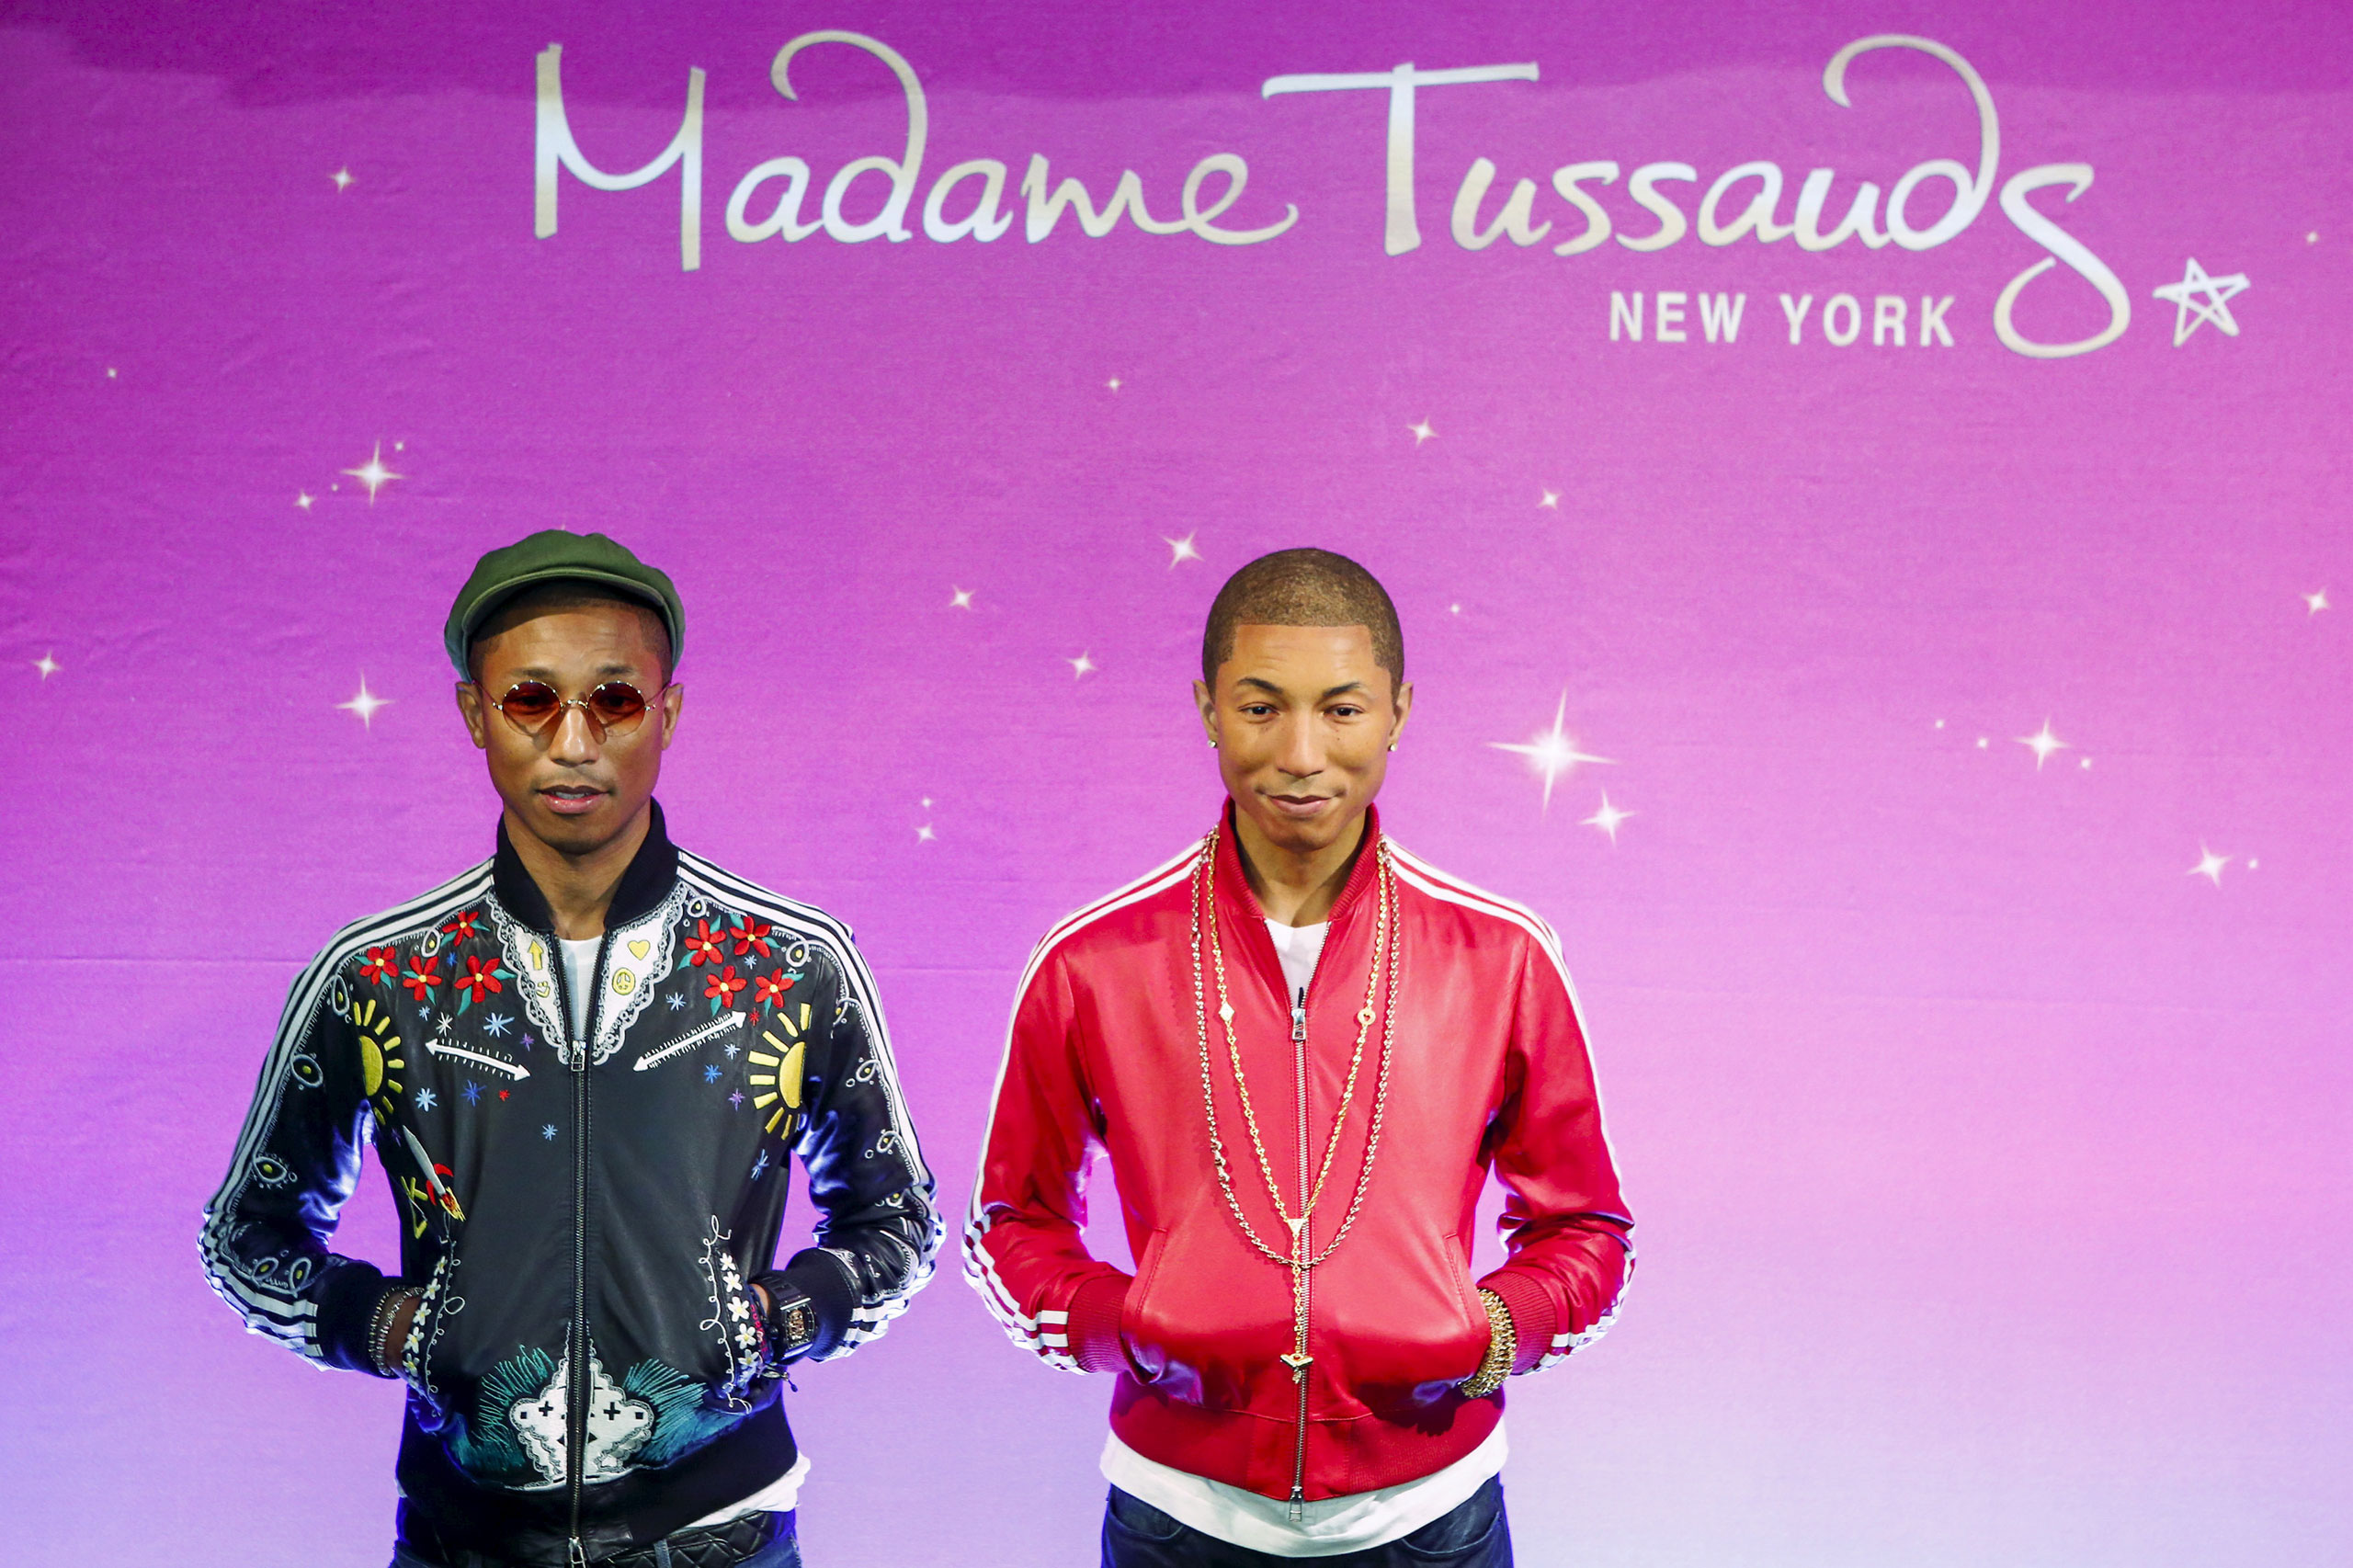 Pharrell Williams, left, poses next to his wax figure at Madame Tussauds in New York on  April 1, 2015.